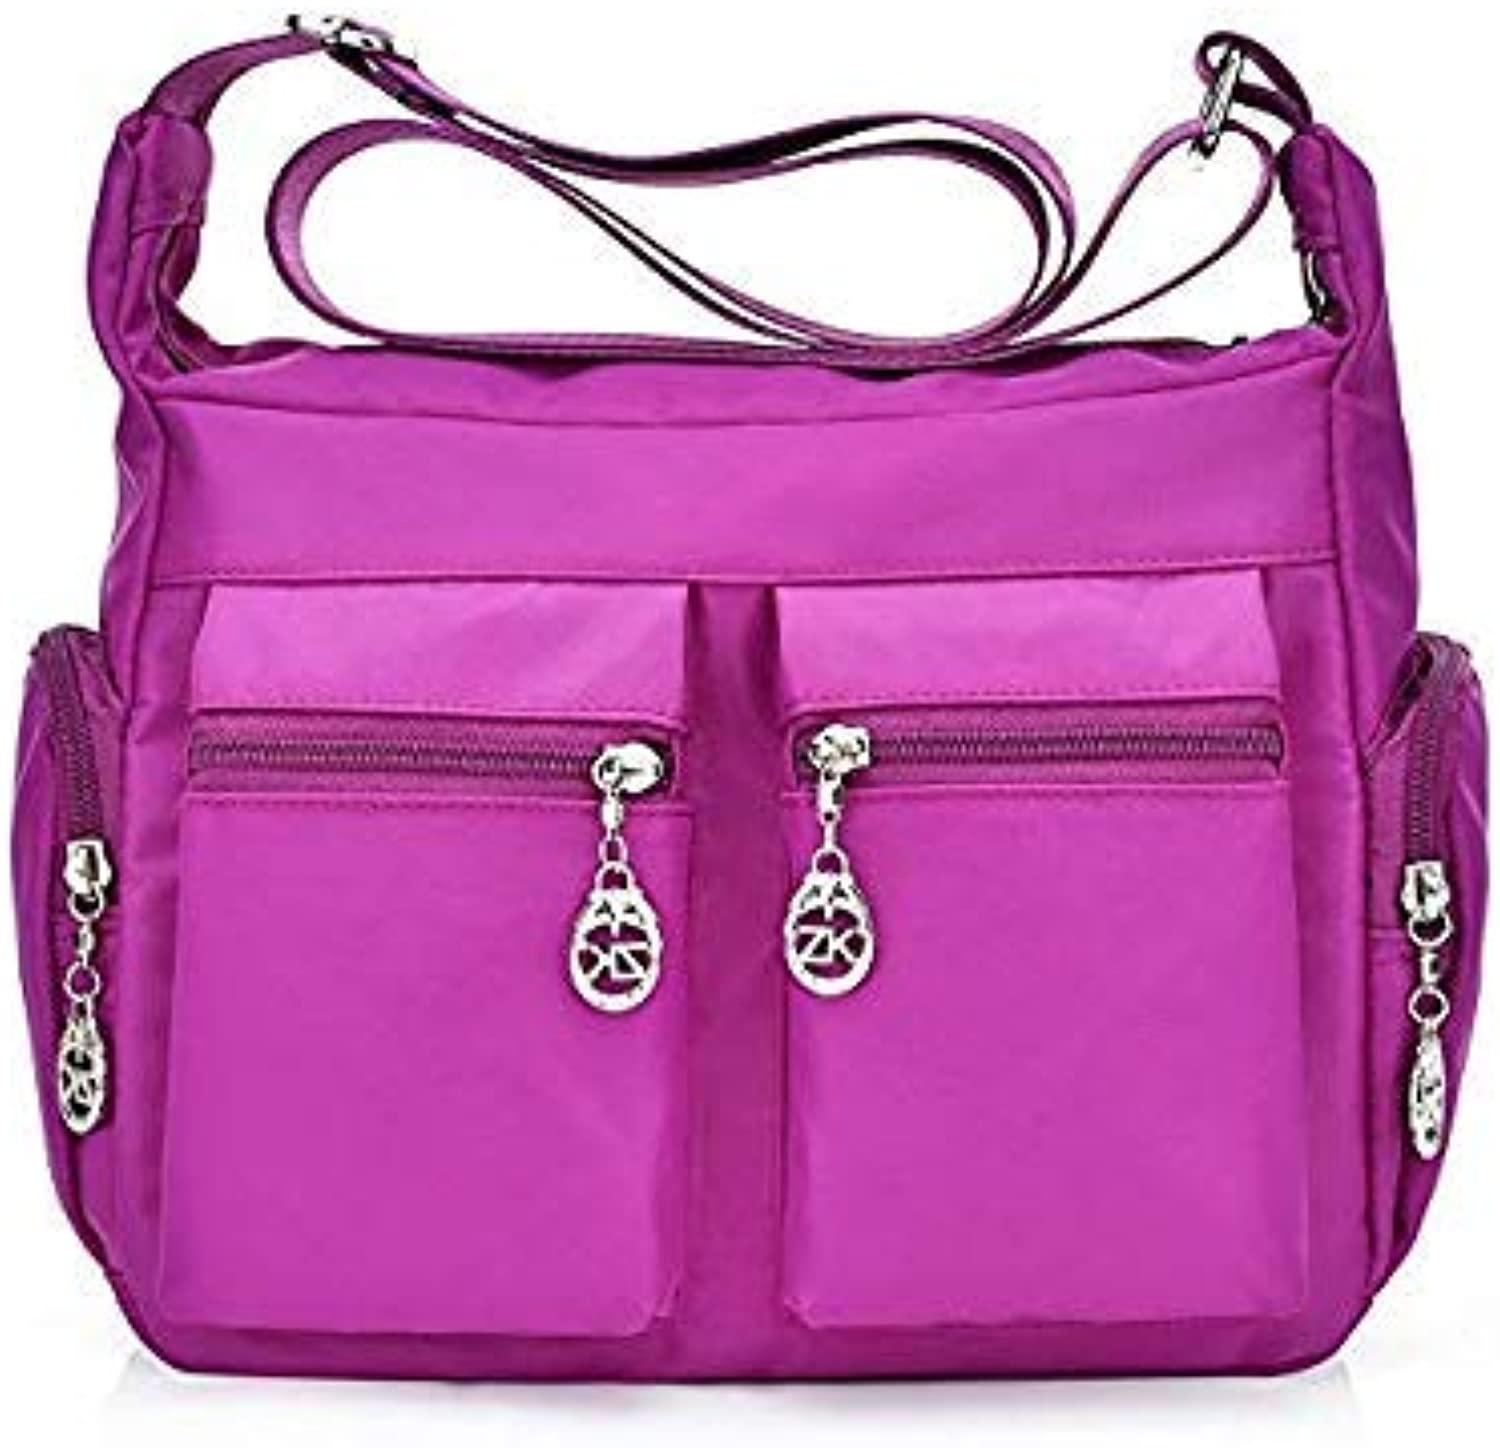 Bloomerang New Fashion Waterproof Lady Courier Bag High Quality Lady Nylon Handbag Travel Leisure Package Large Capacity Multi-Function Bag color Bright Purple